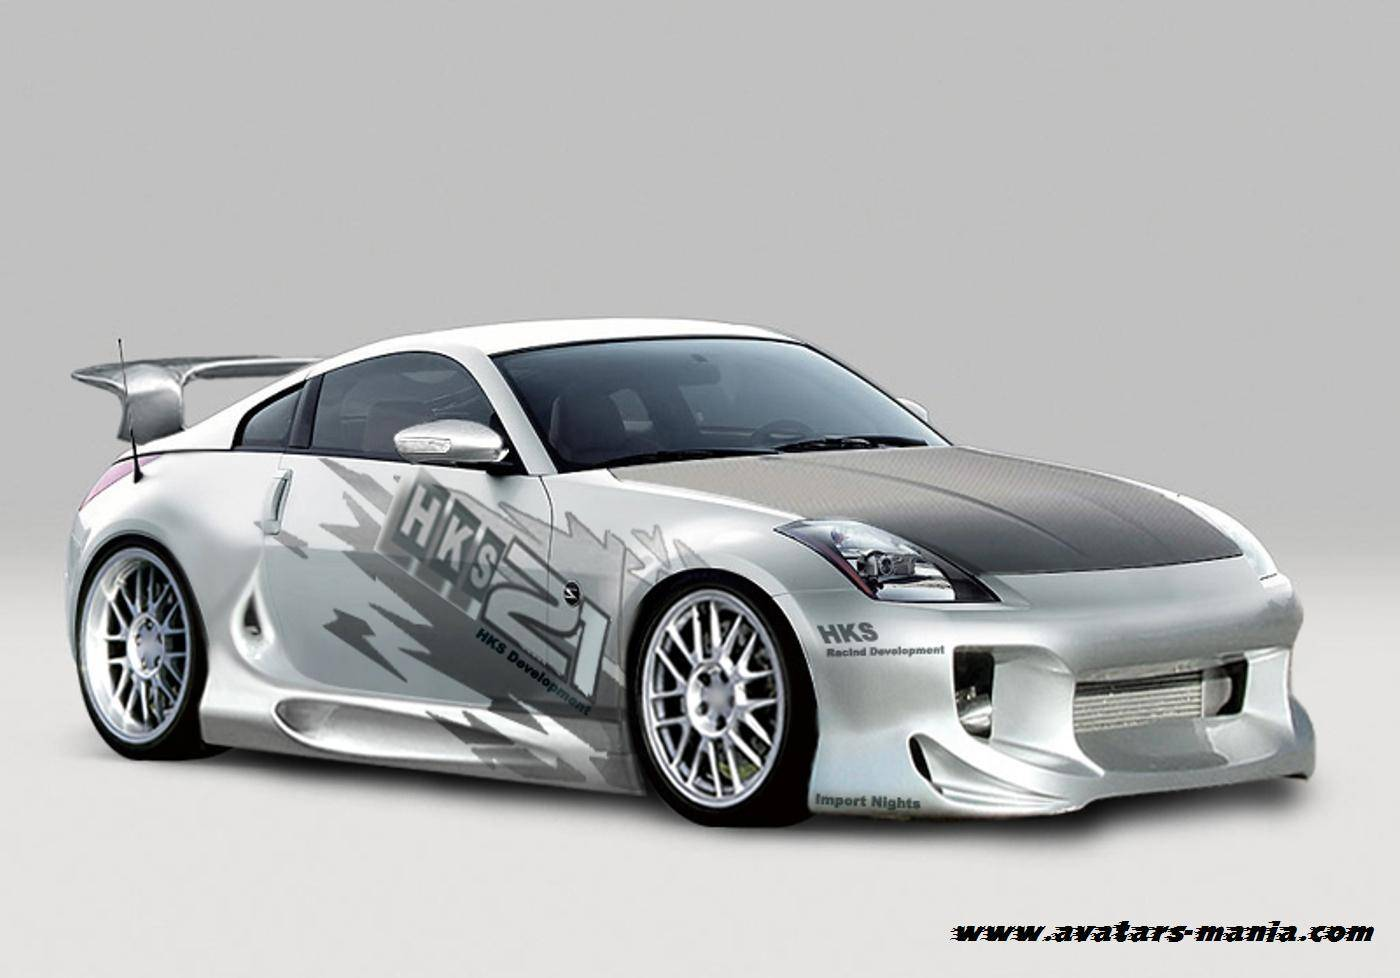 Nissan 350Z Modified Tuning Auto Carros. Wallpaper tuning car sport.